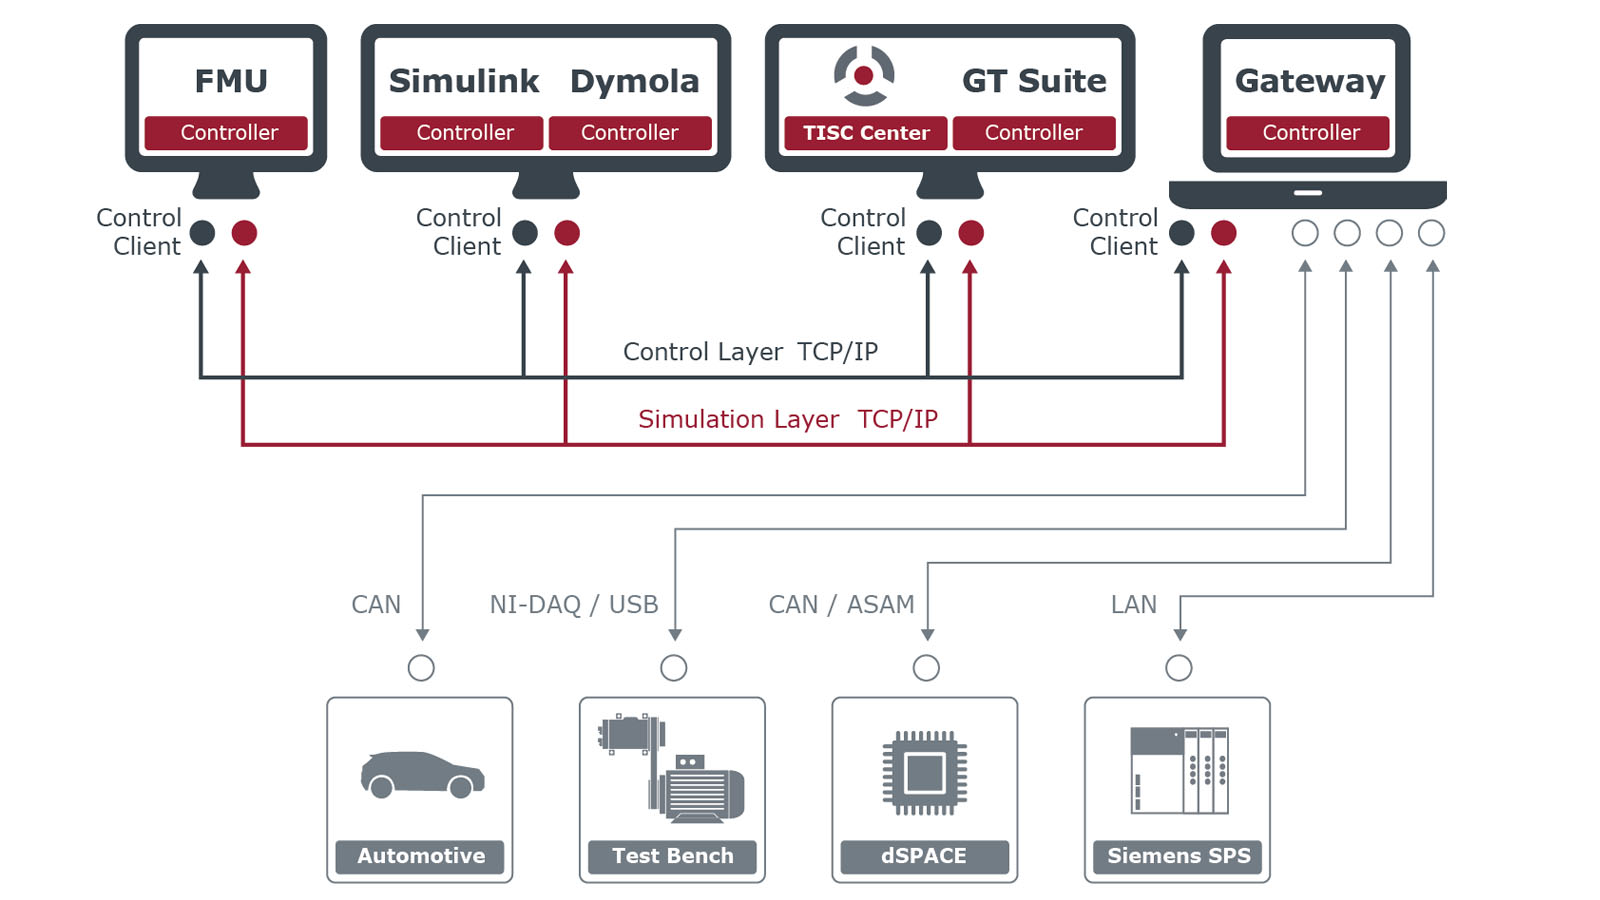 Both coupling and connection of simulation programs with TISC and hardware via gateways